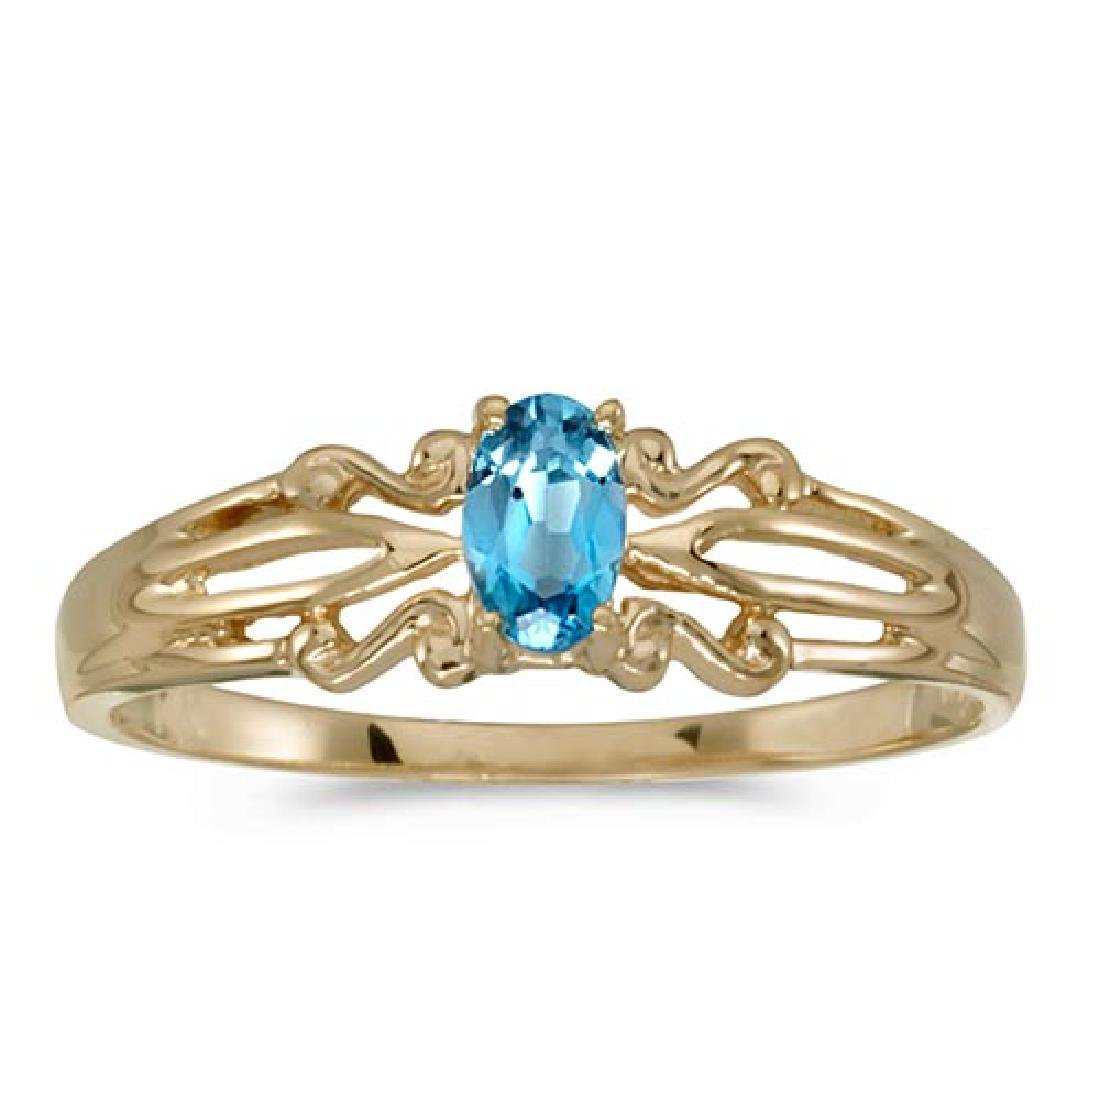 Certified 14k Yellow Gold Oval Blue Topaz Ring